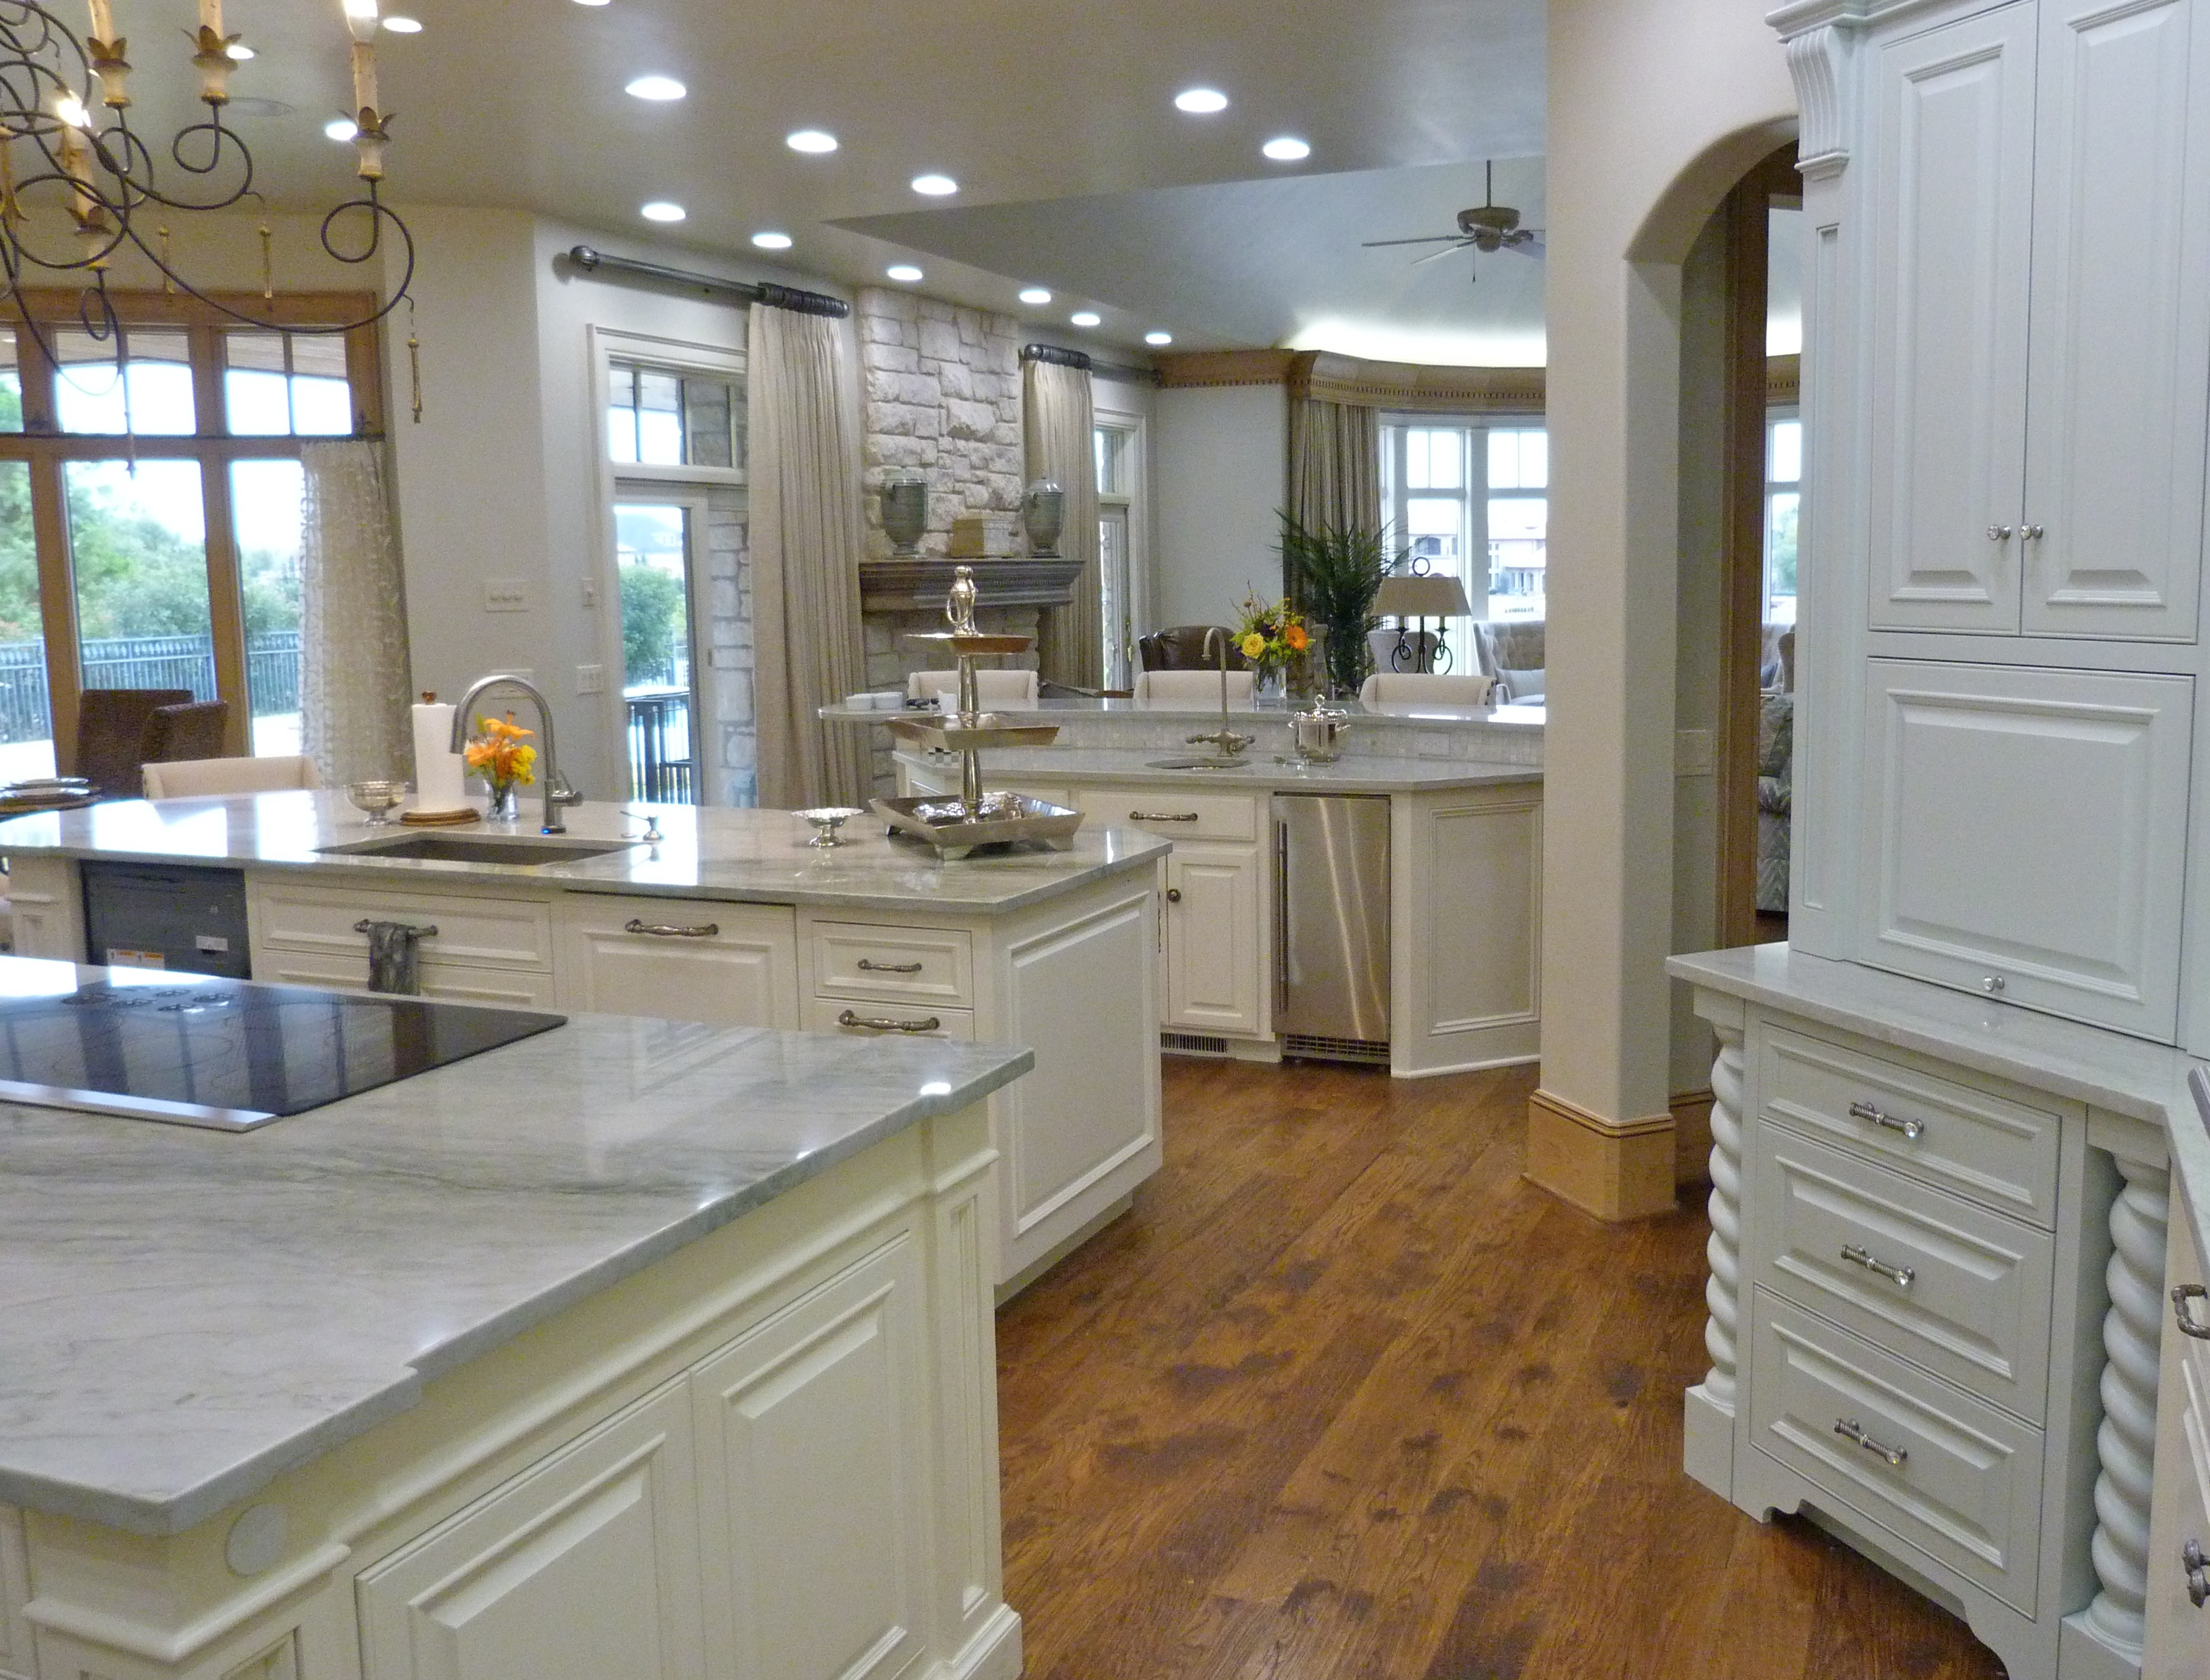 majesticconstructionok kitchen remodel okc Huge kitchen with three islands from Majestic Construction remodel